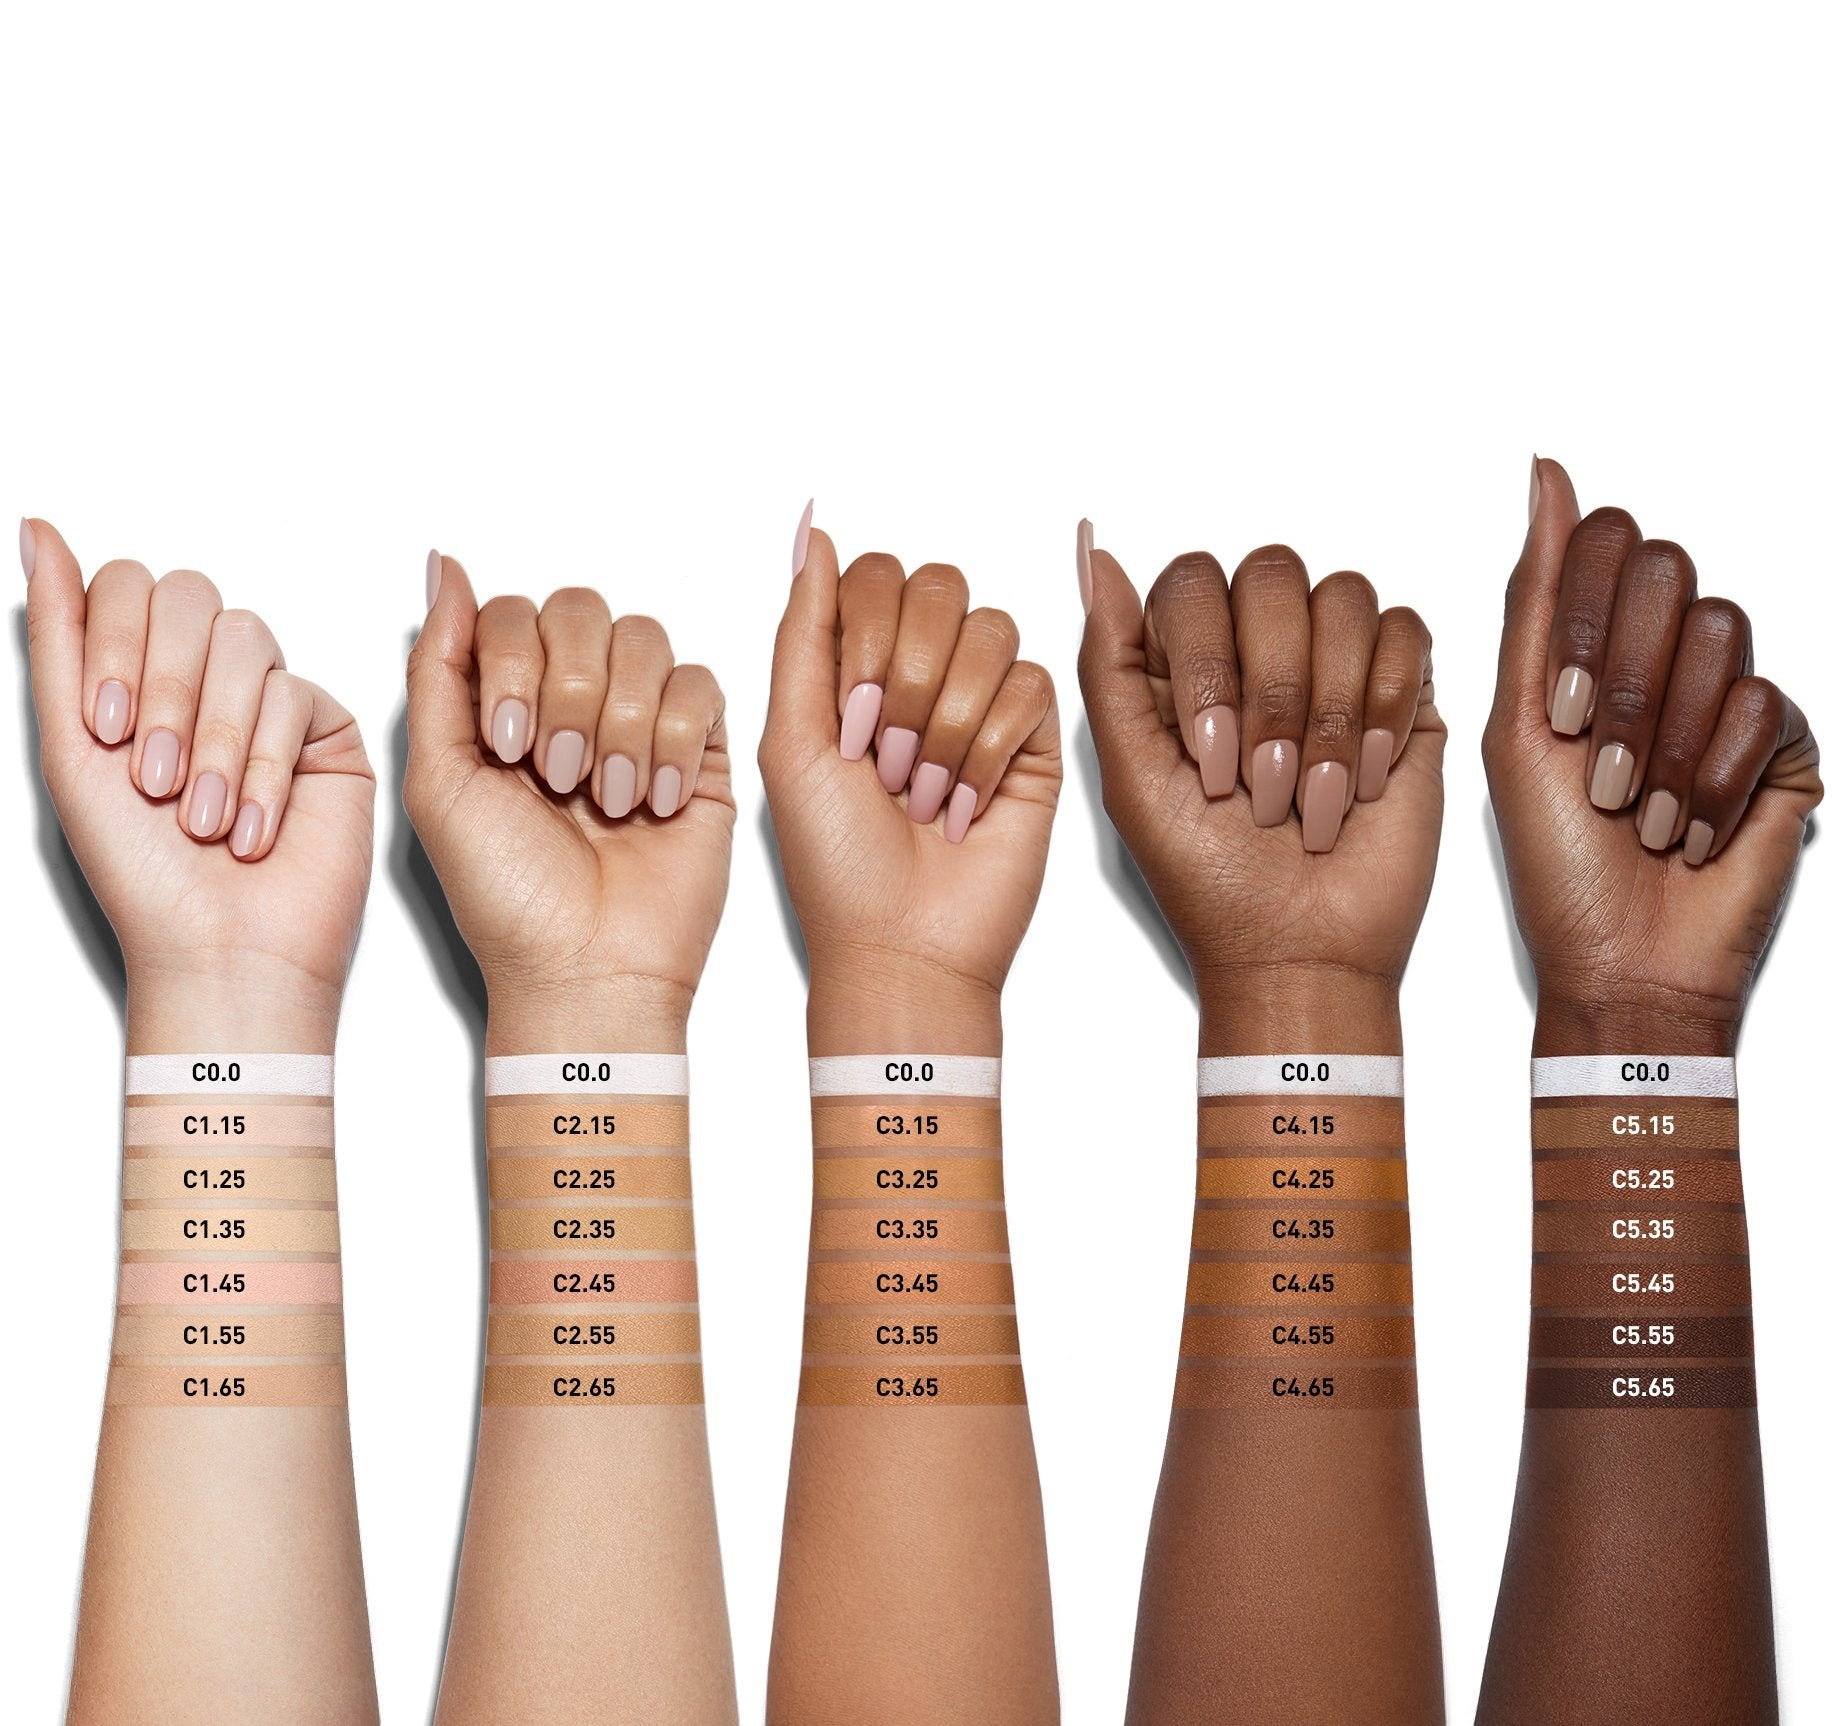 FLUIDITY FULL-COVERAGE CONCEALER - C1.35 ARM SWATCHES, view larger image